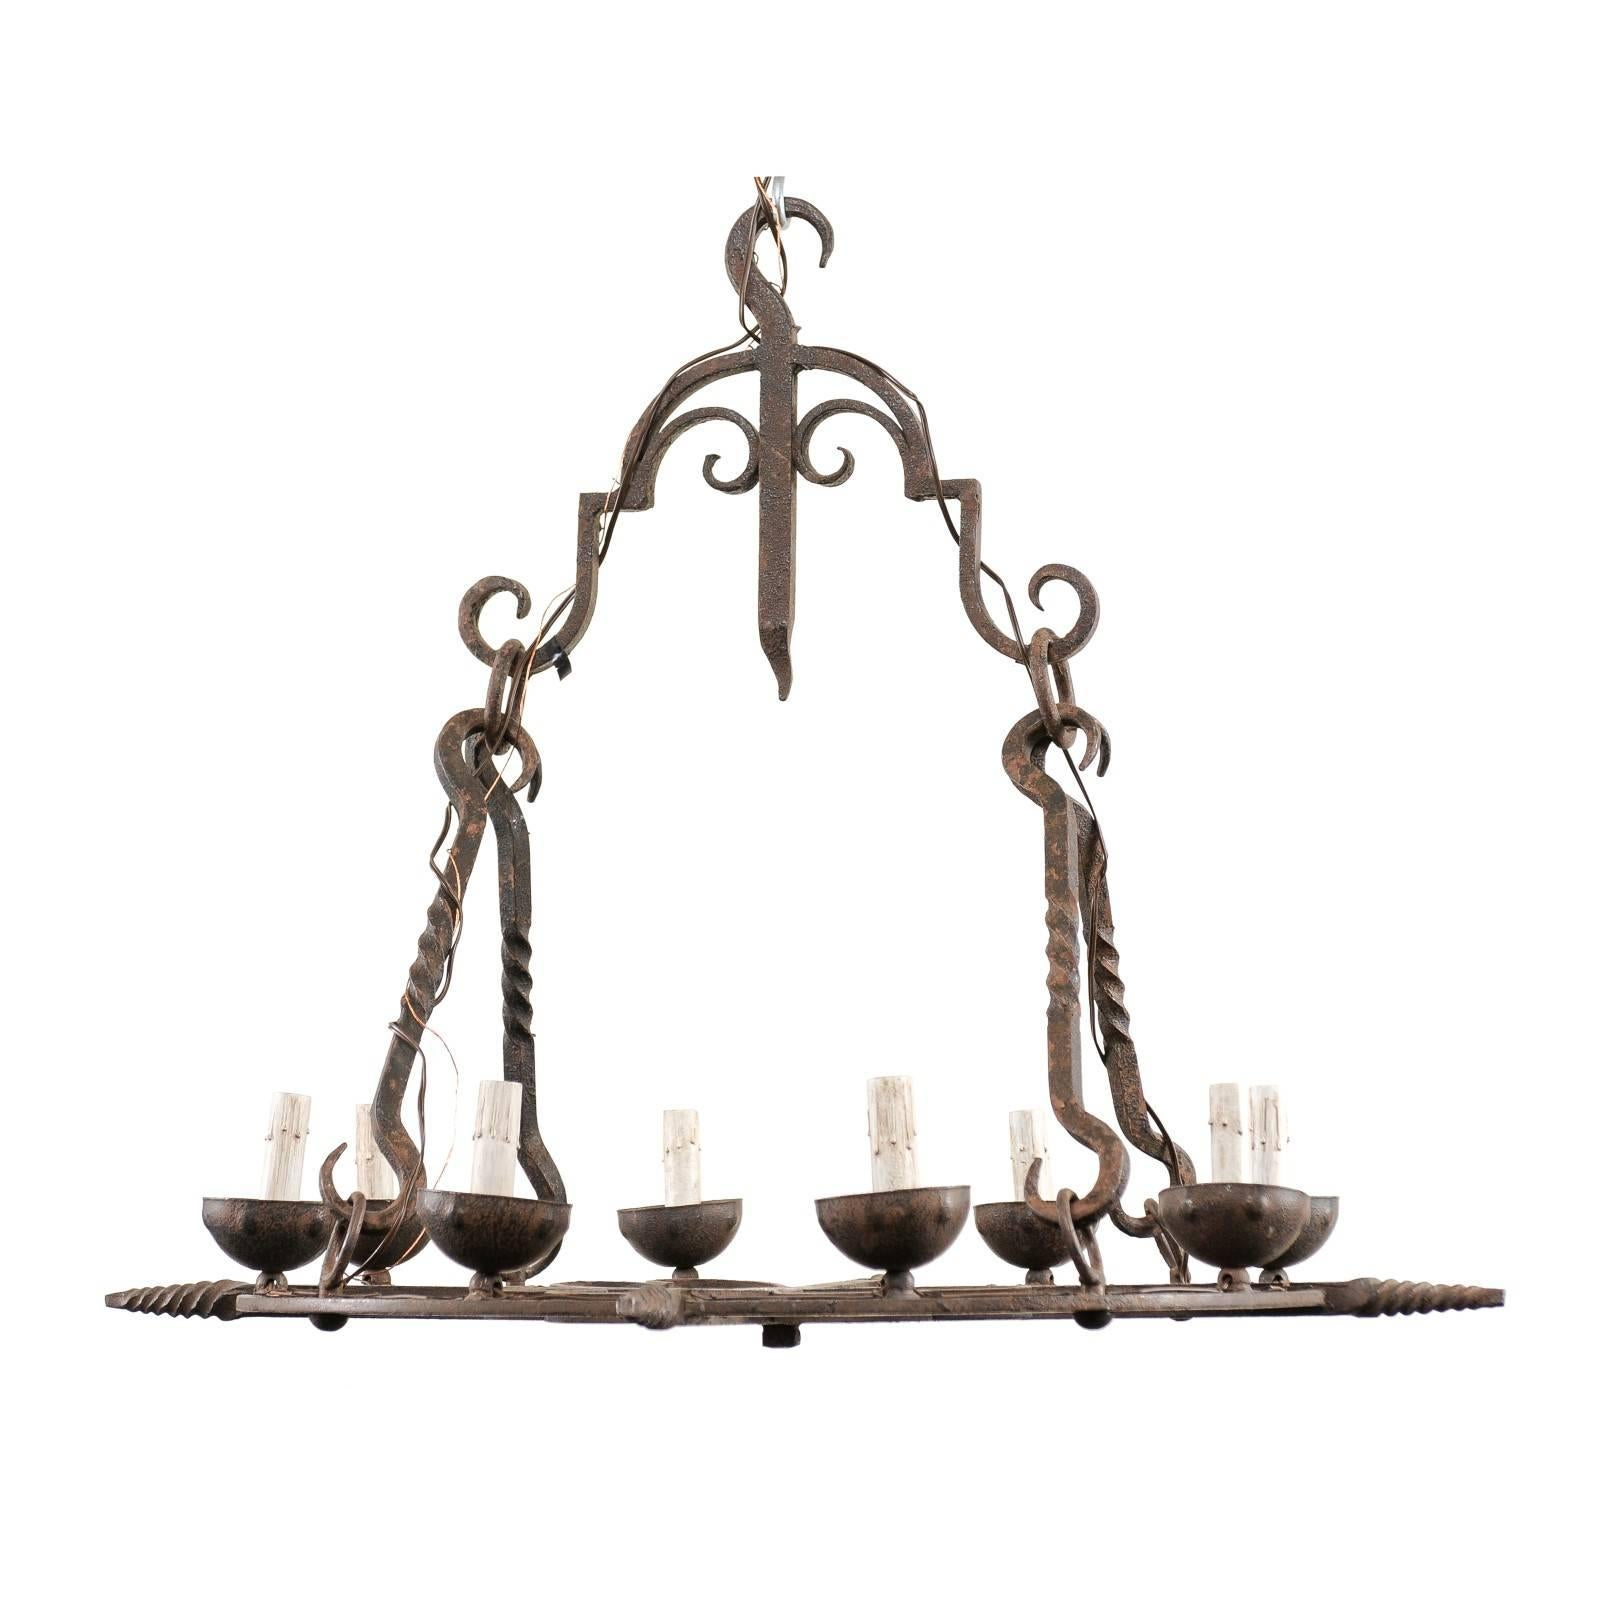 French 8-Light Circular Iron Chandelier Nicely Adorn w/Twists, Hearts, & Scrolls